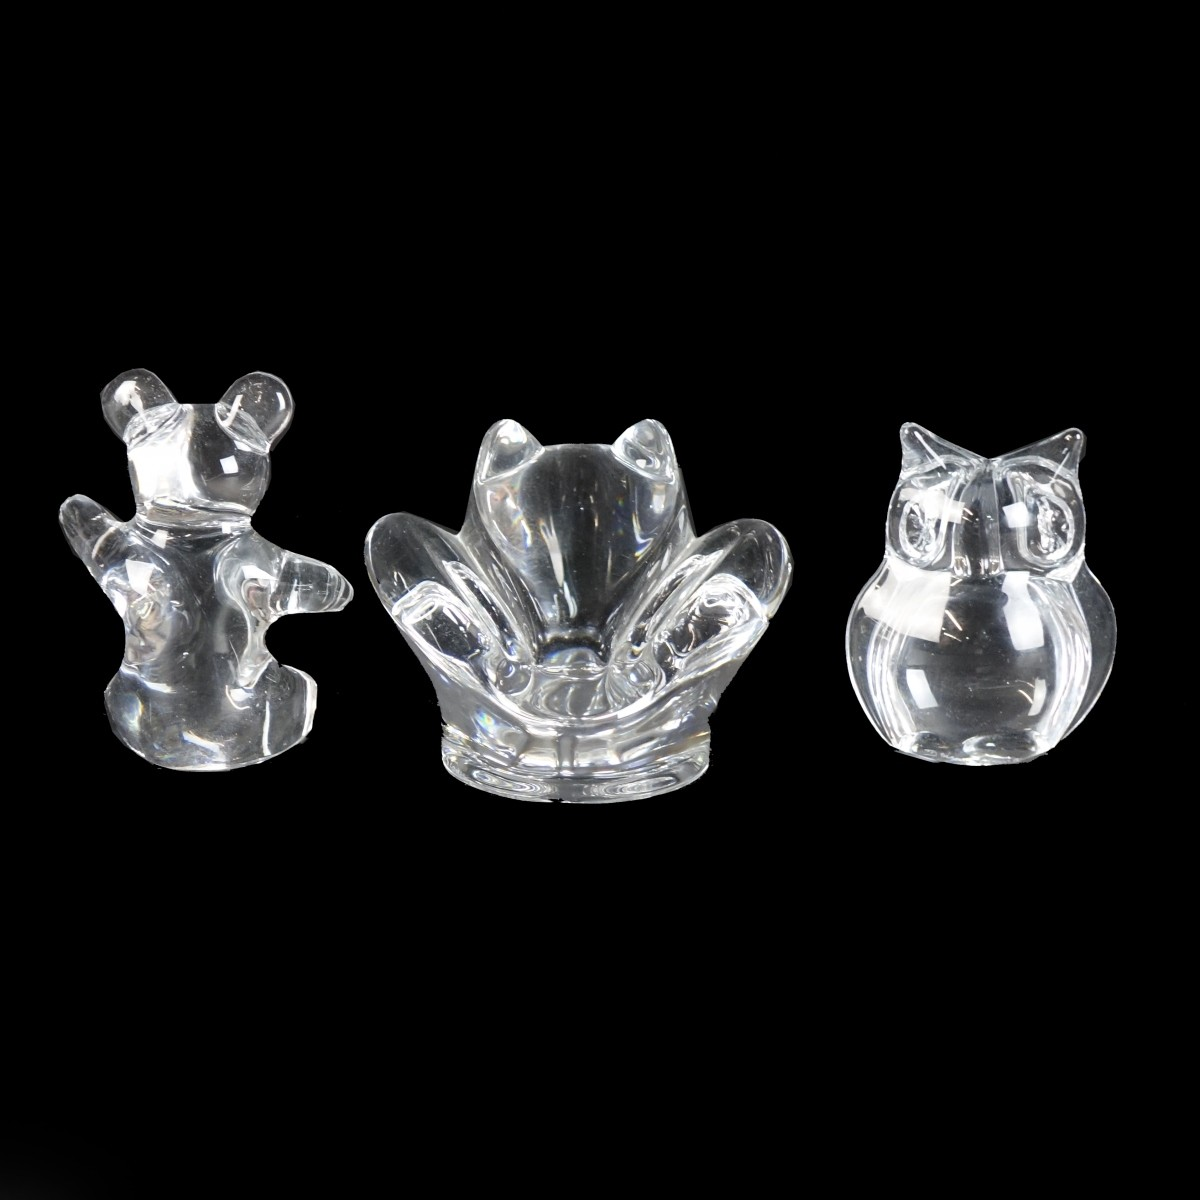 Daum Art Glass Figurines